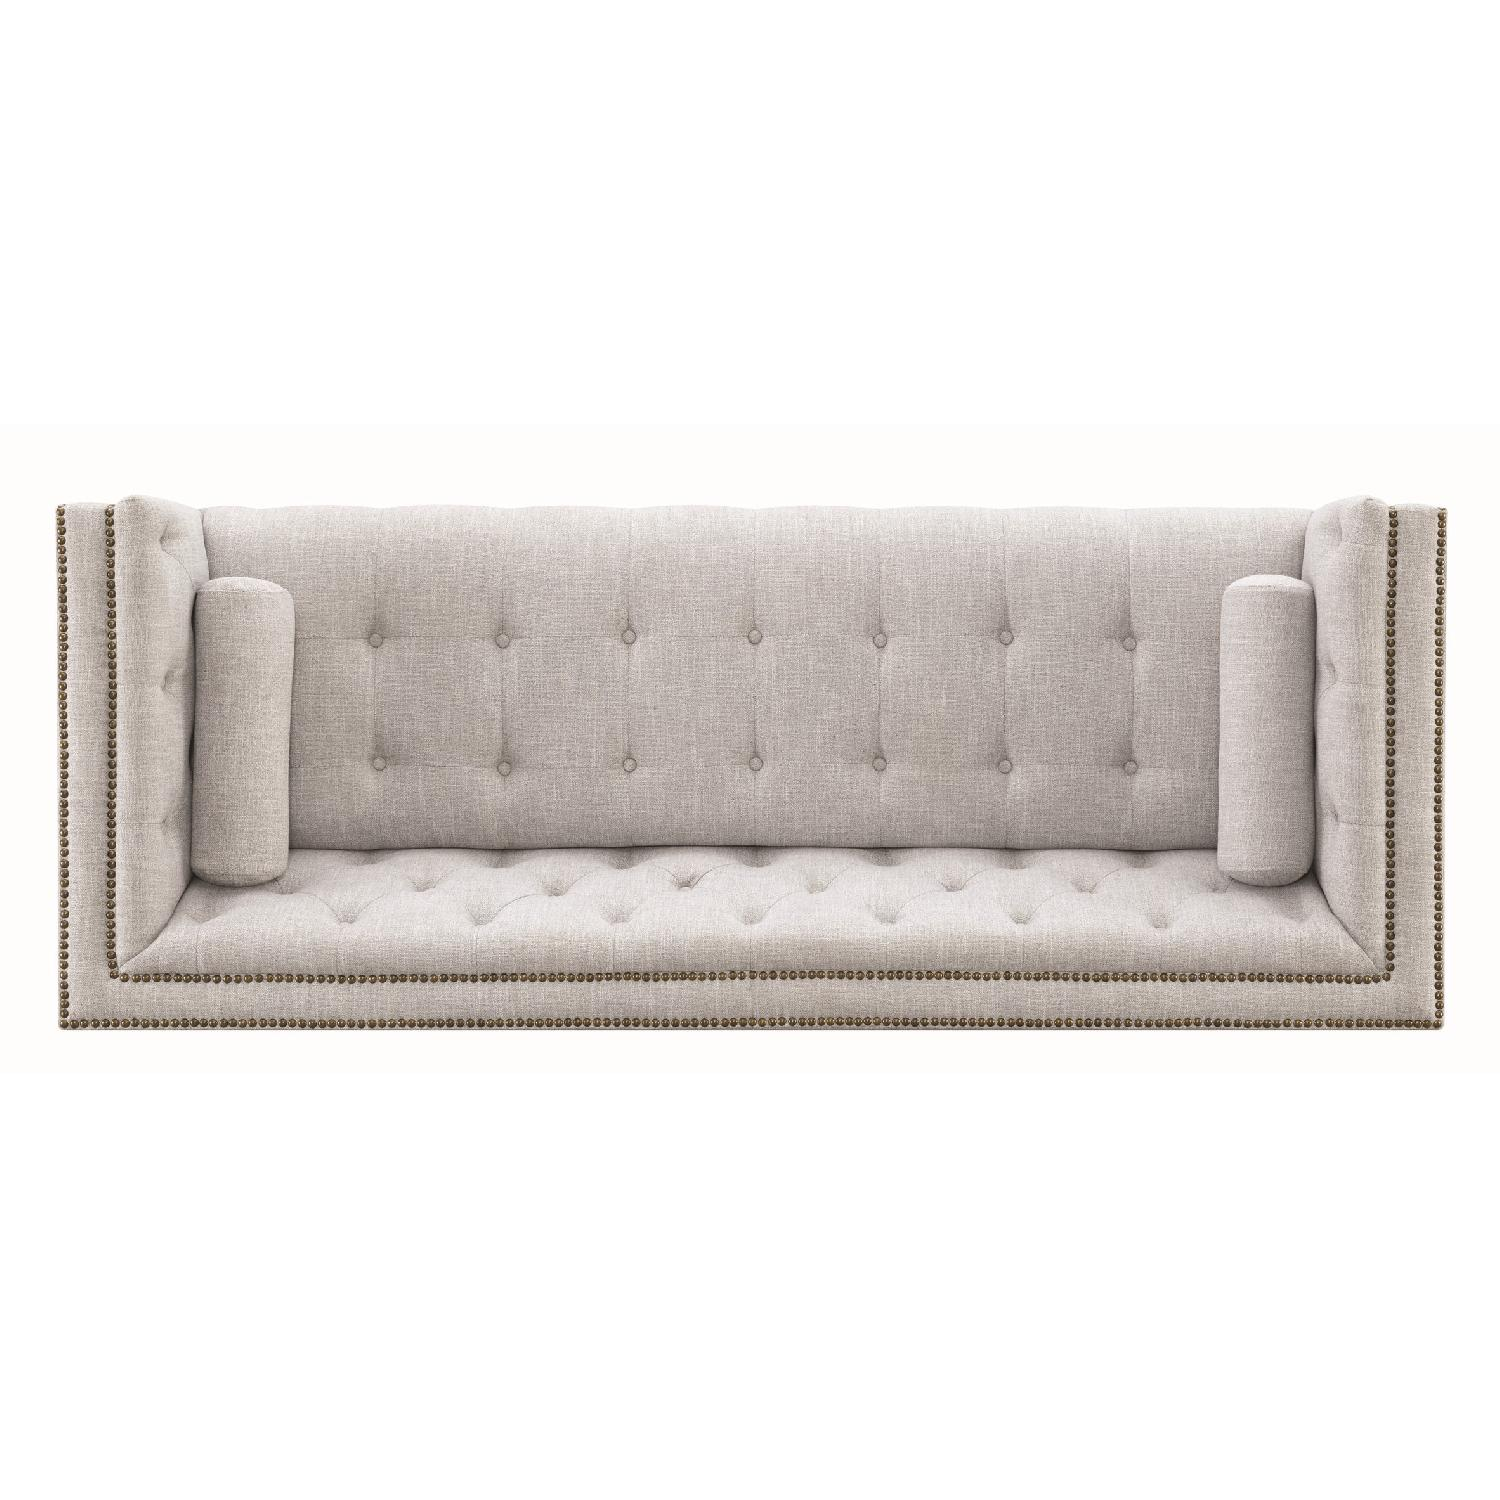 Modern Style Sofa w/ Tufted Buttons & Nailhead Accent - image-5